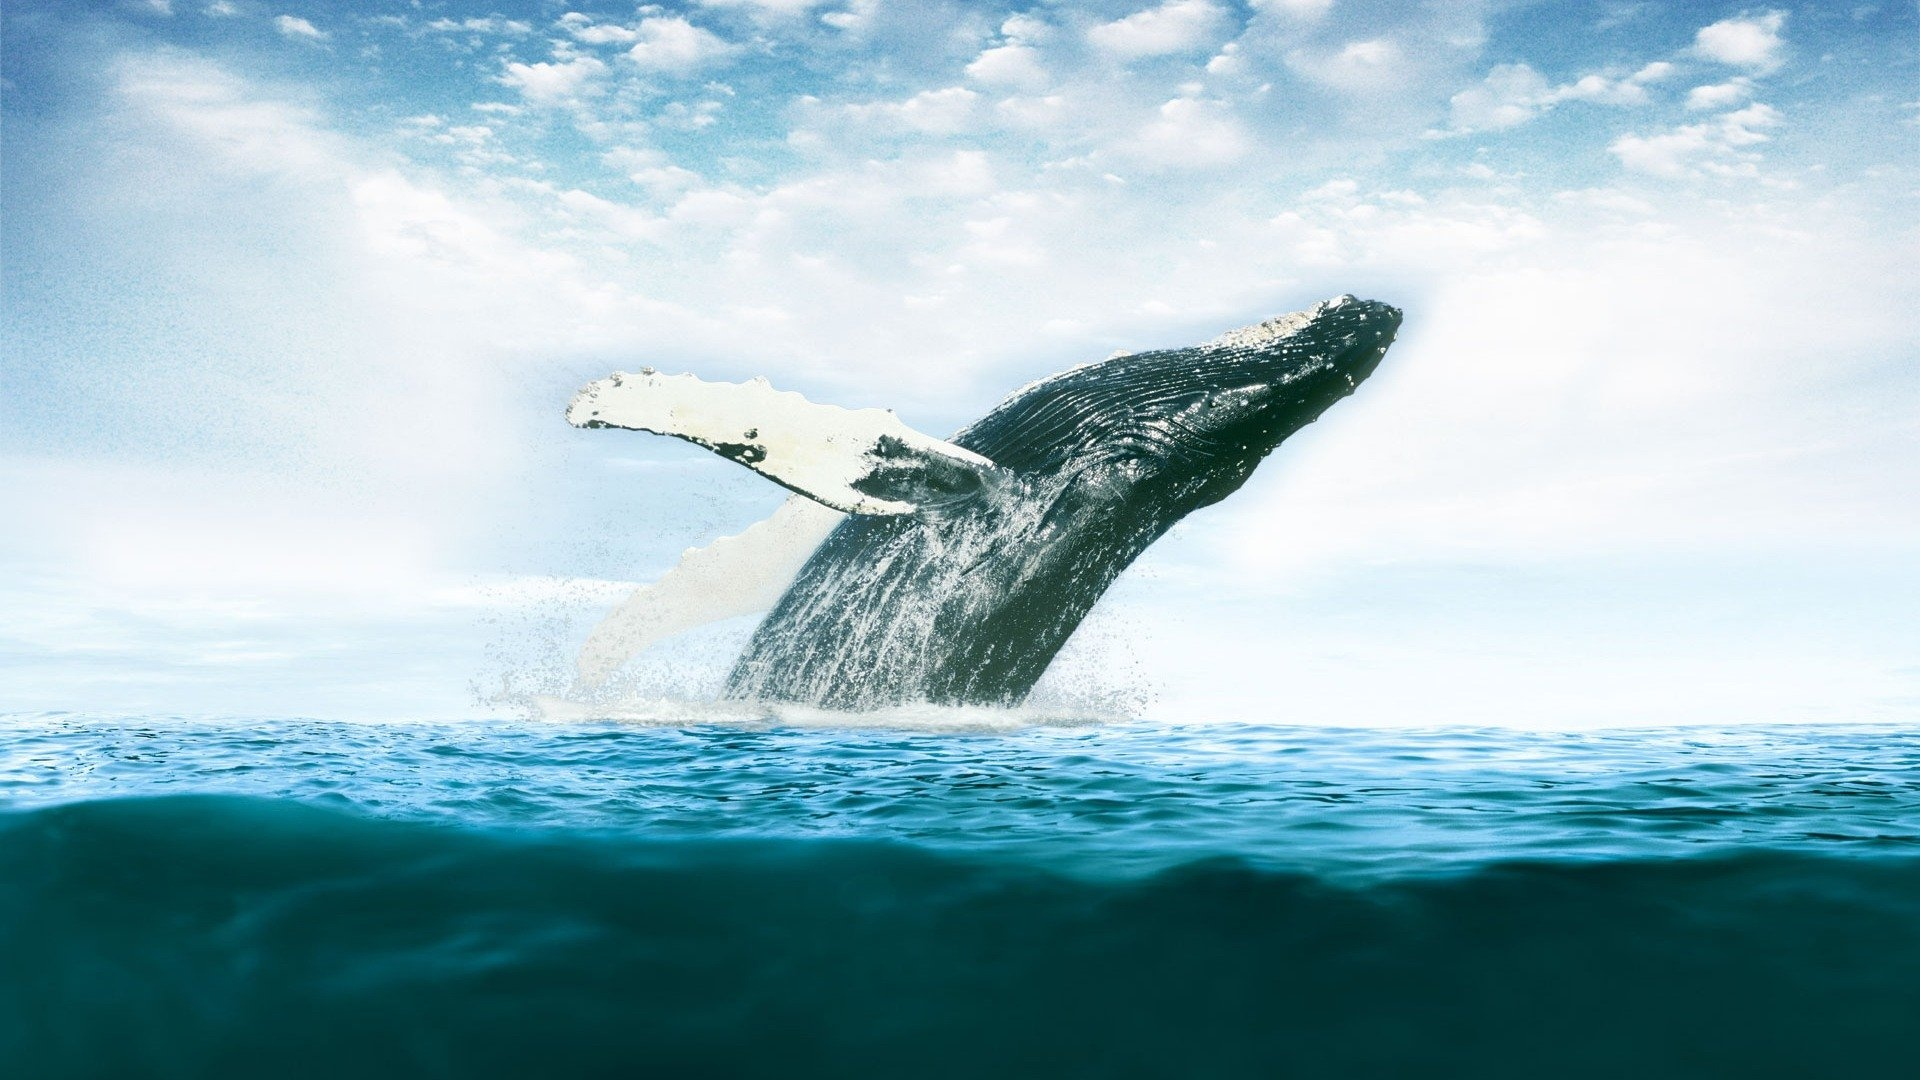 30 Fantastic Hd Whale Wallpapers